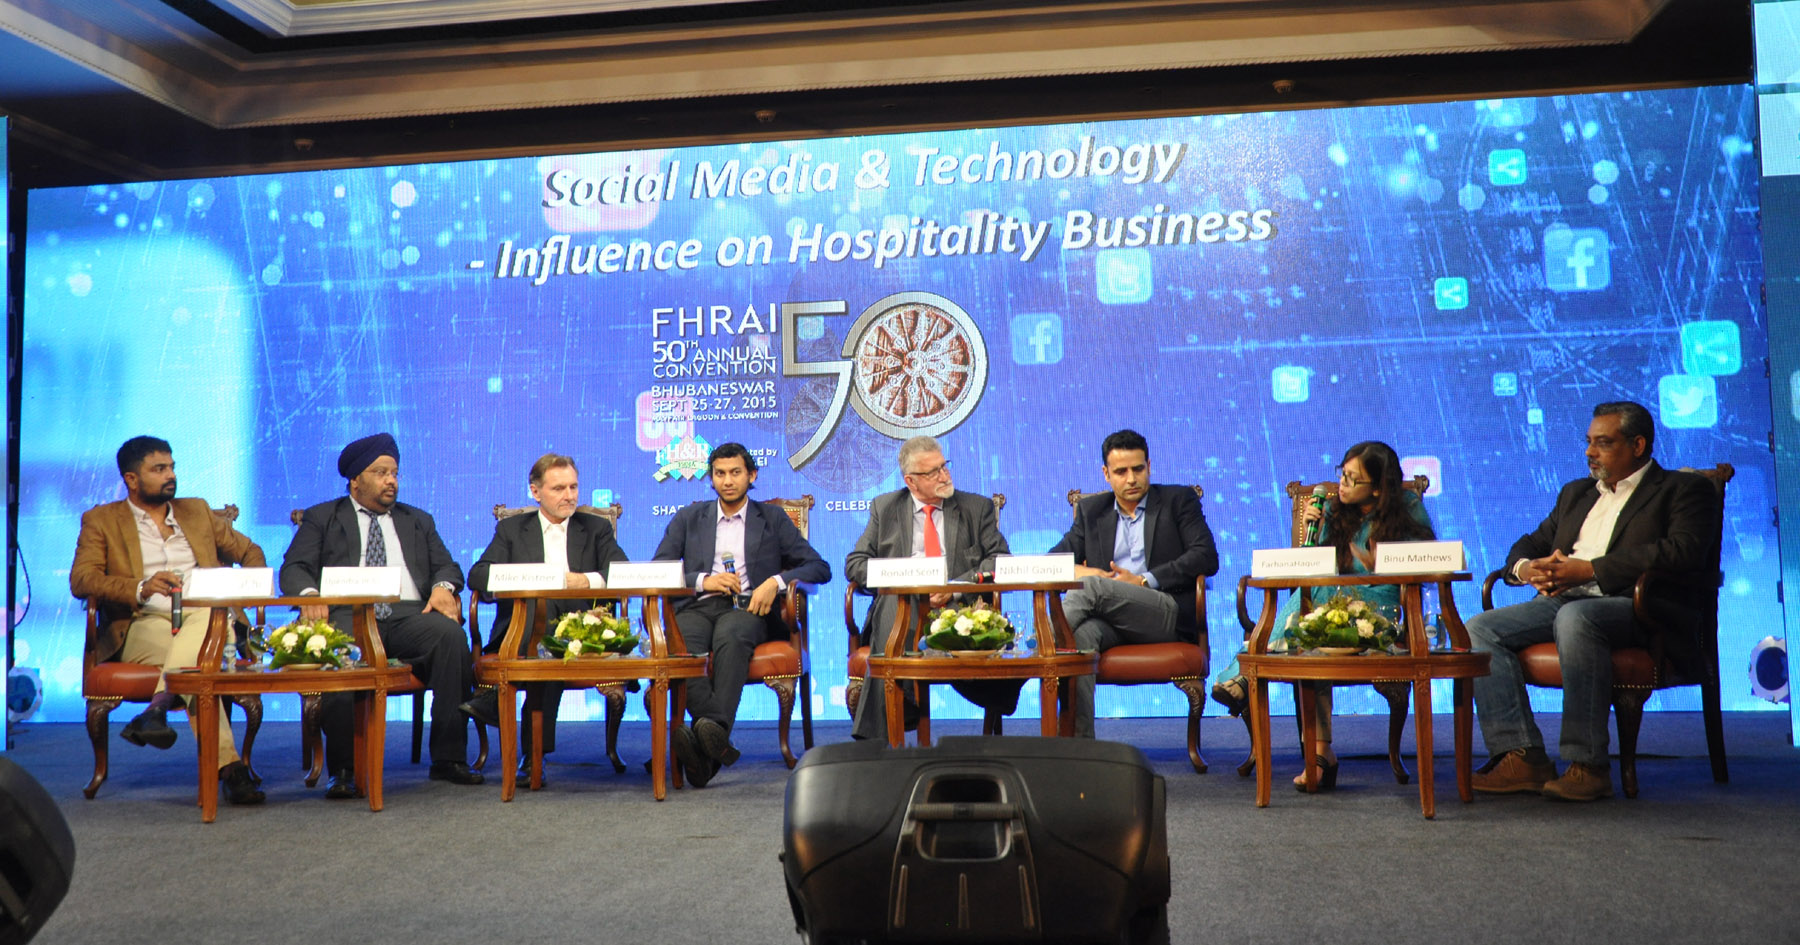 Social Media & Technology - Influence on Hospitality Business (2)